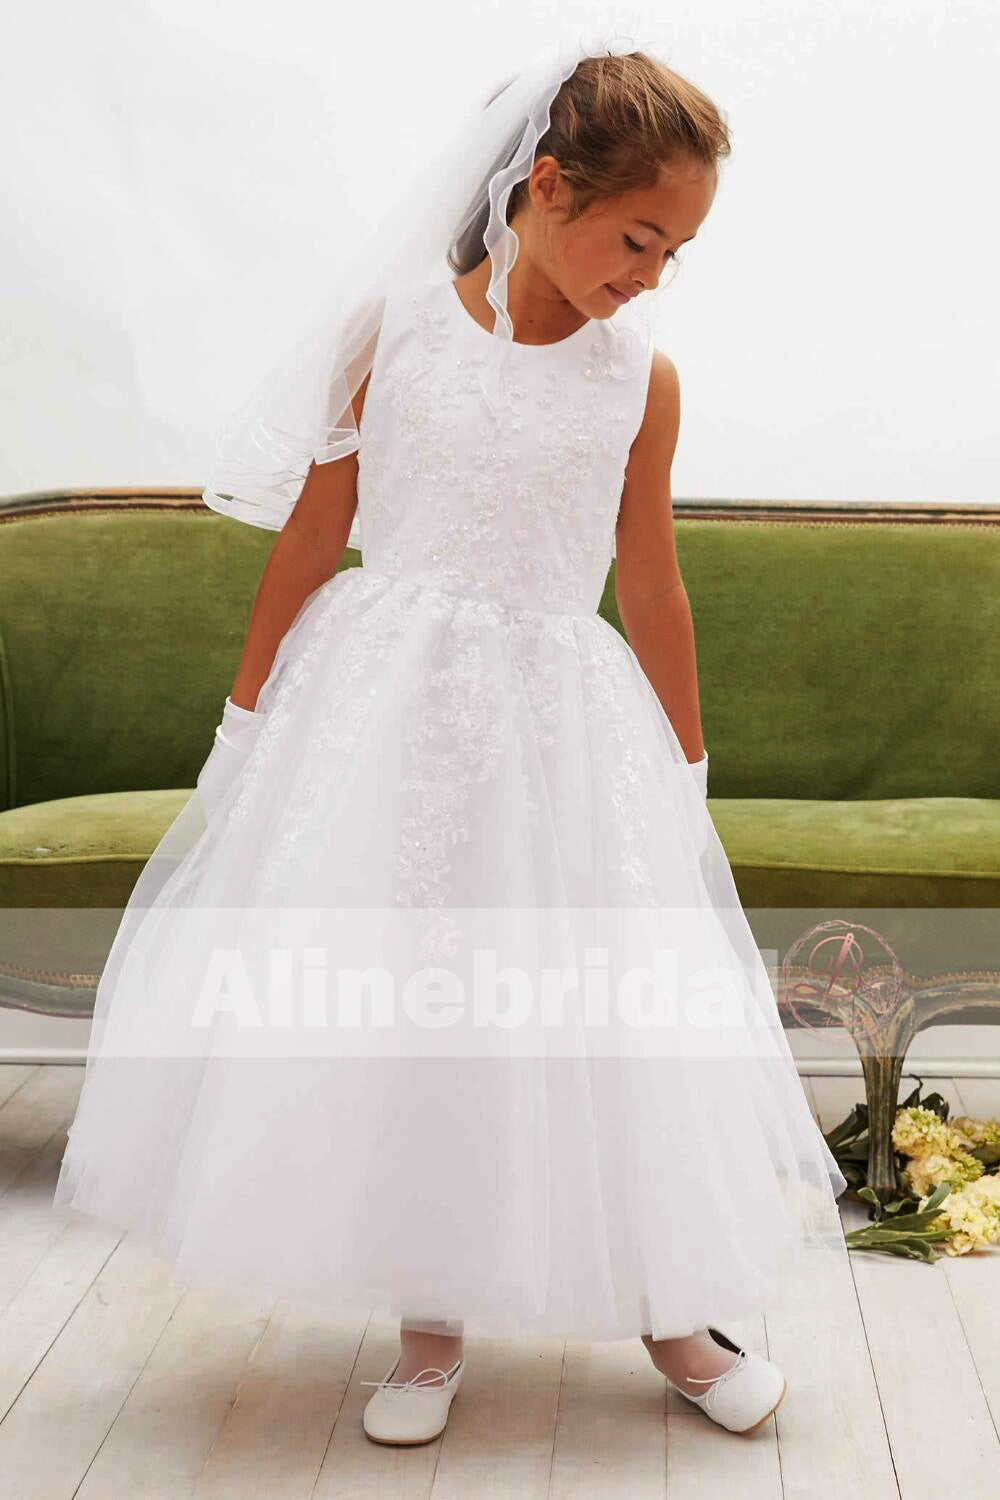 Off White Lace Tulle Classic Round Neck Flower Girl Dresses Fgs061